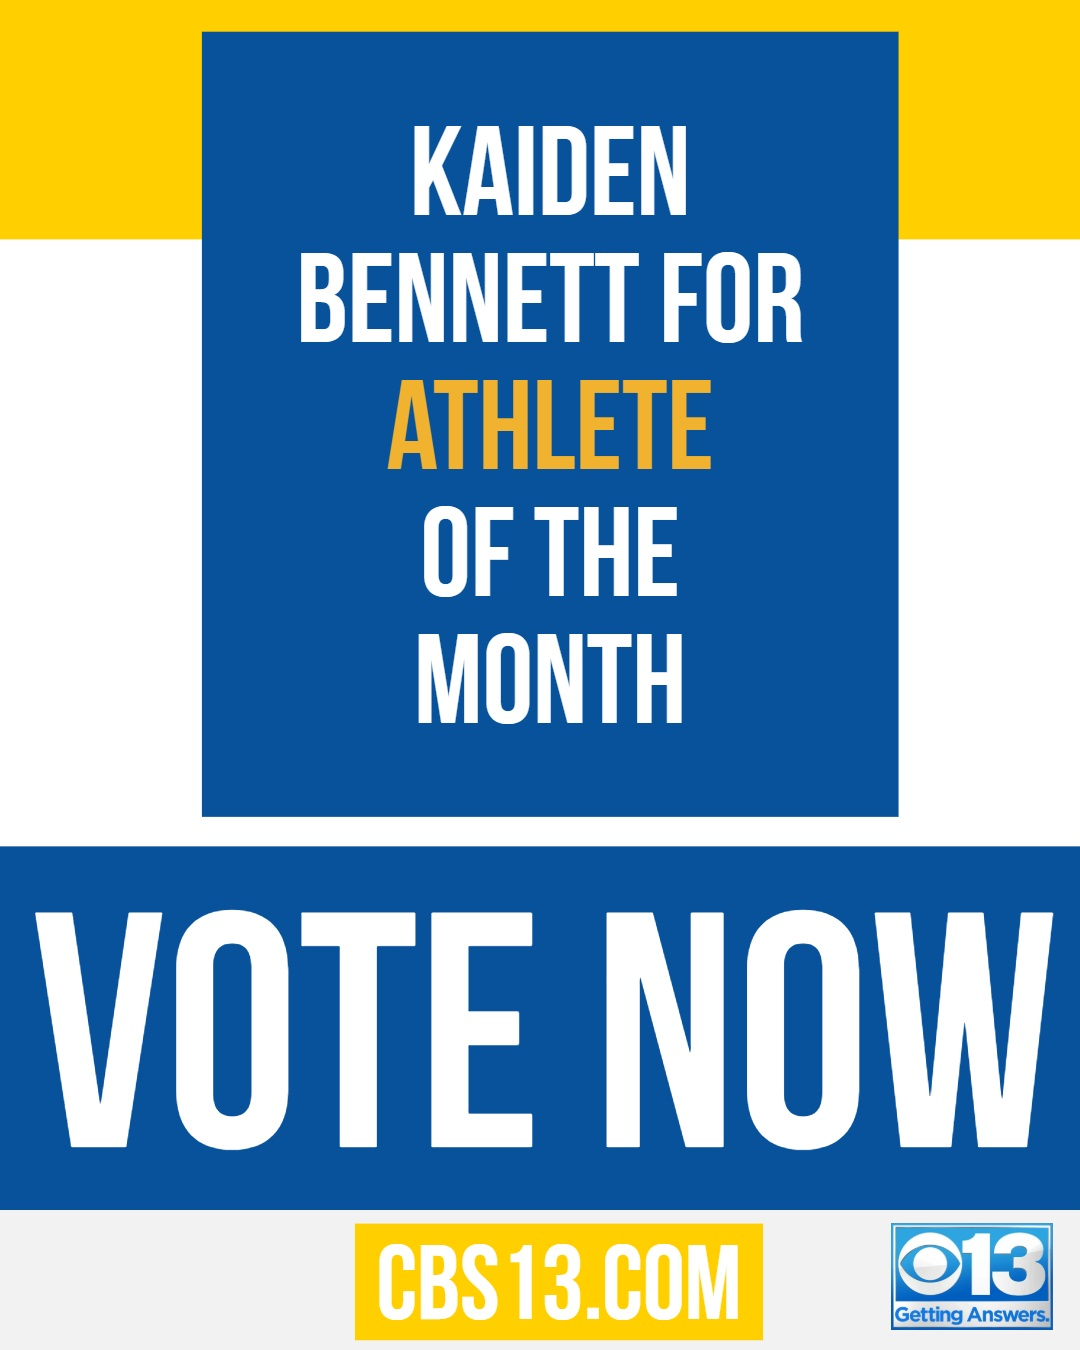 Folsom H.S. Kaiden Bennett has been nominated to be CBS13's Athlete of the Month for September-Top 3